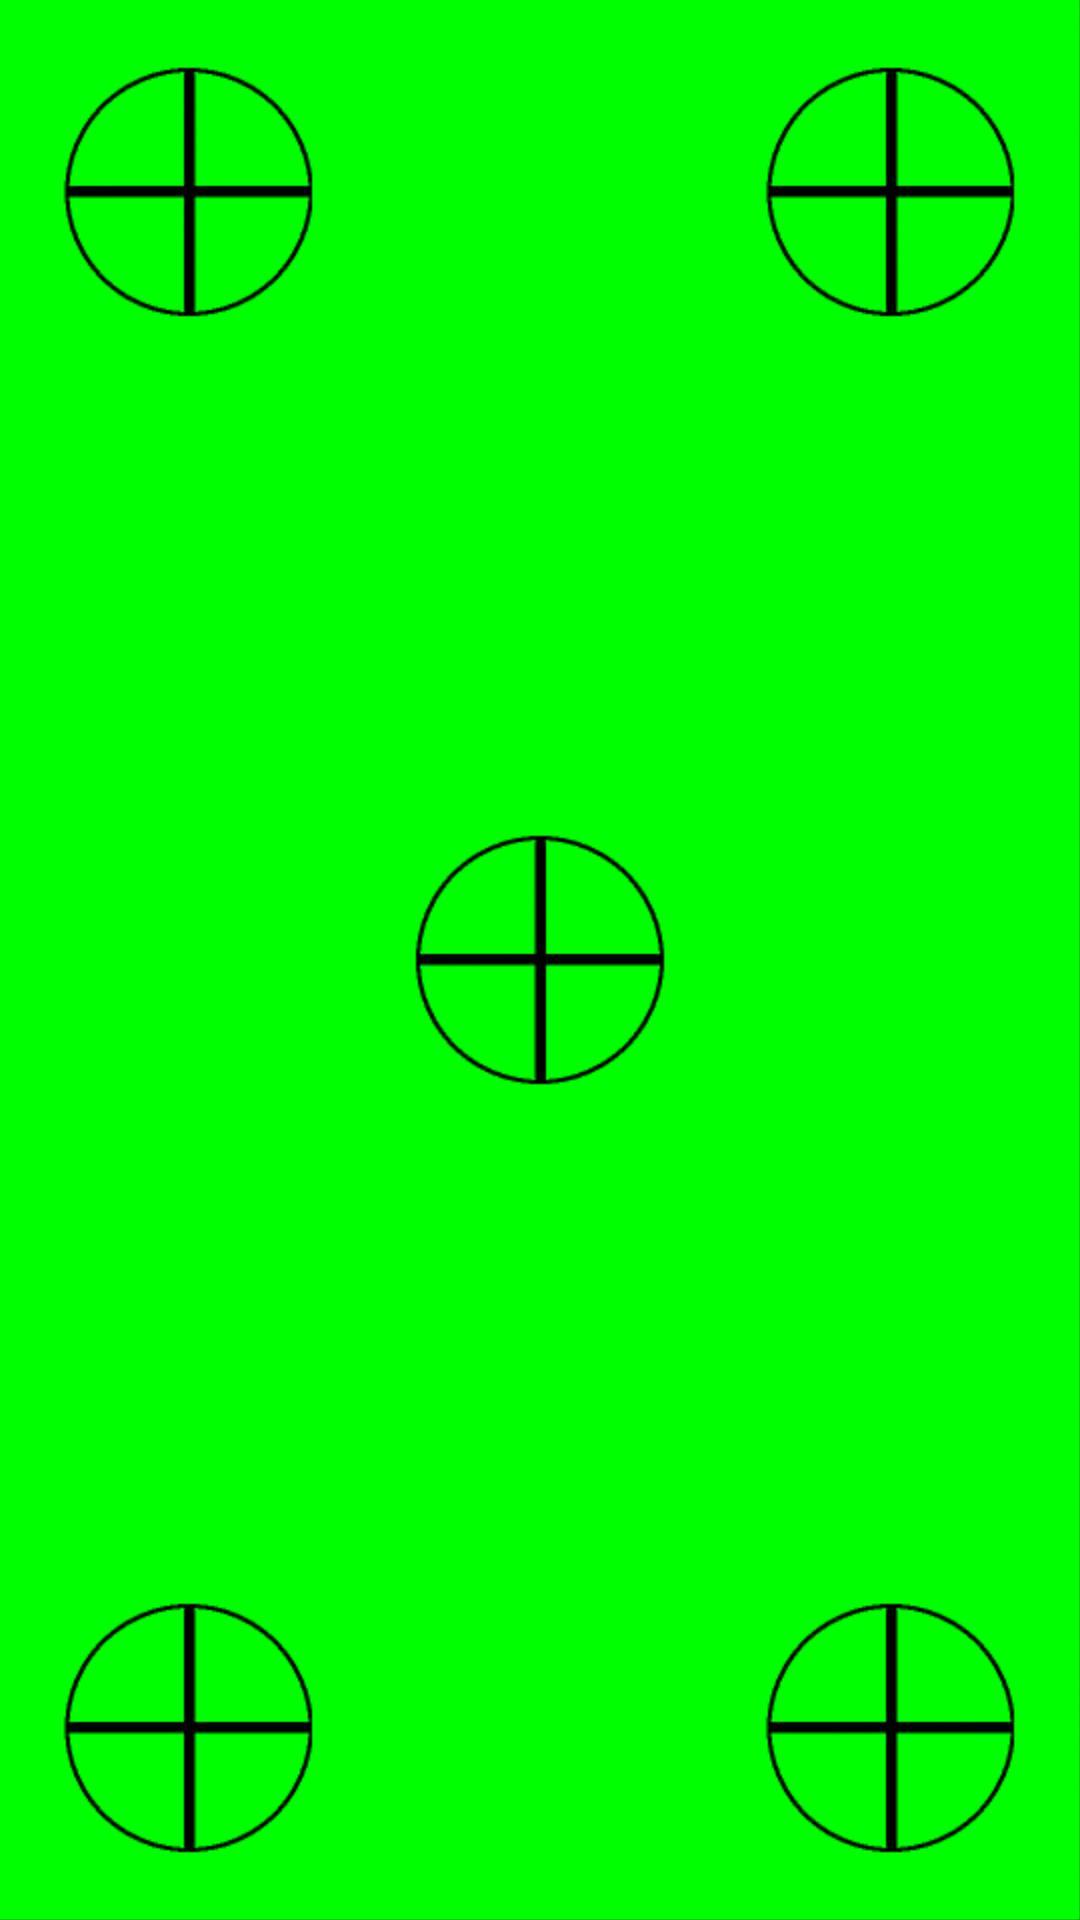 Tracking Markers for Green Screen Device for Android - APK Download